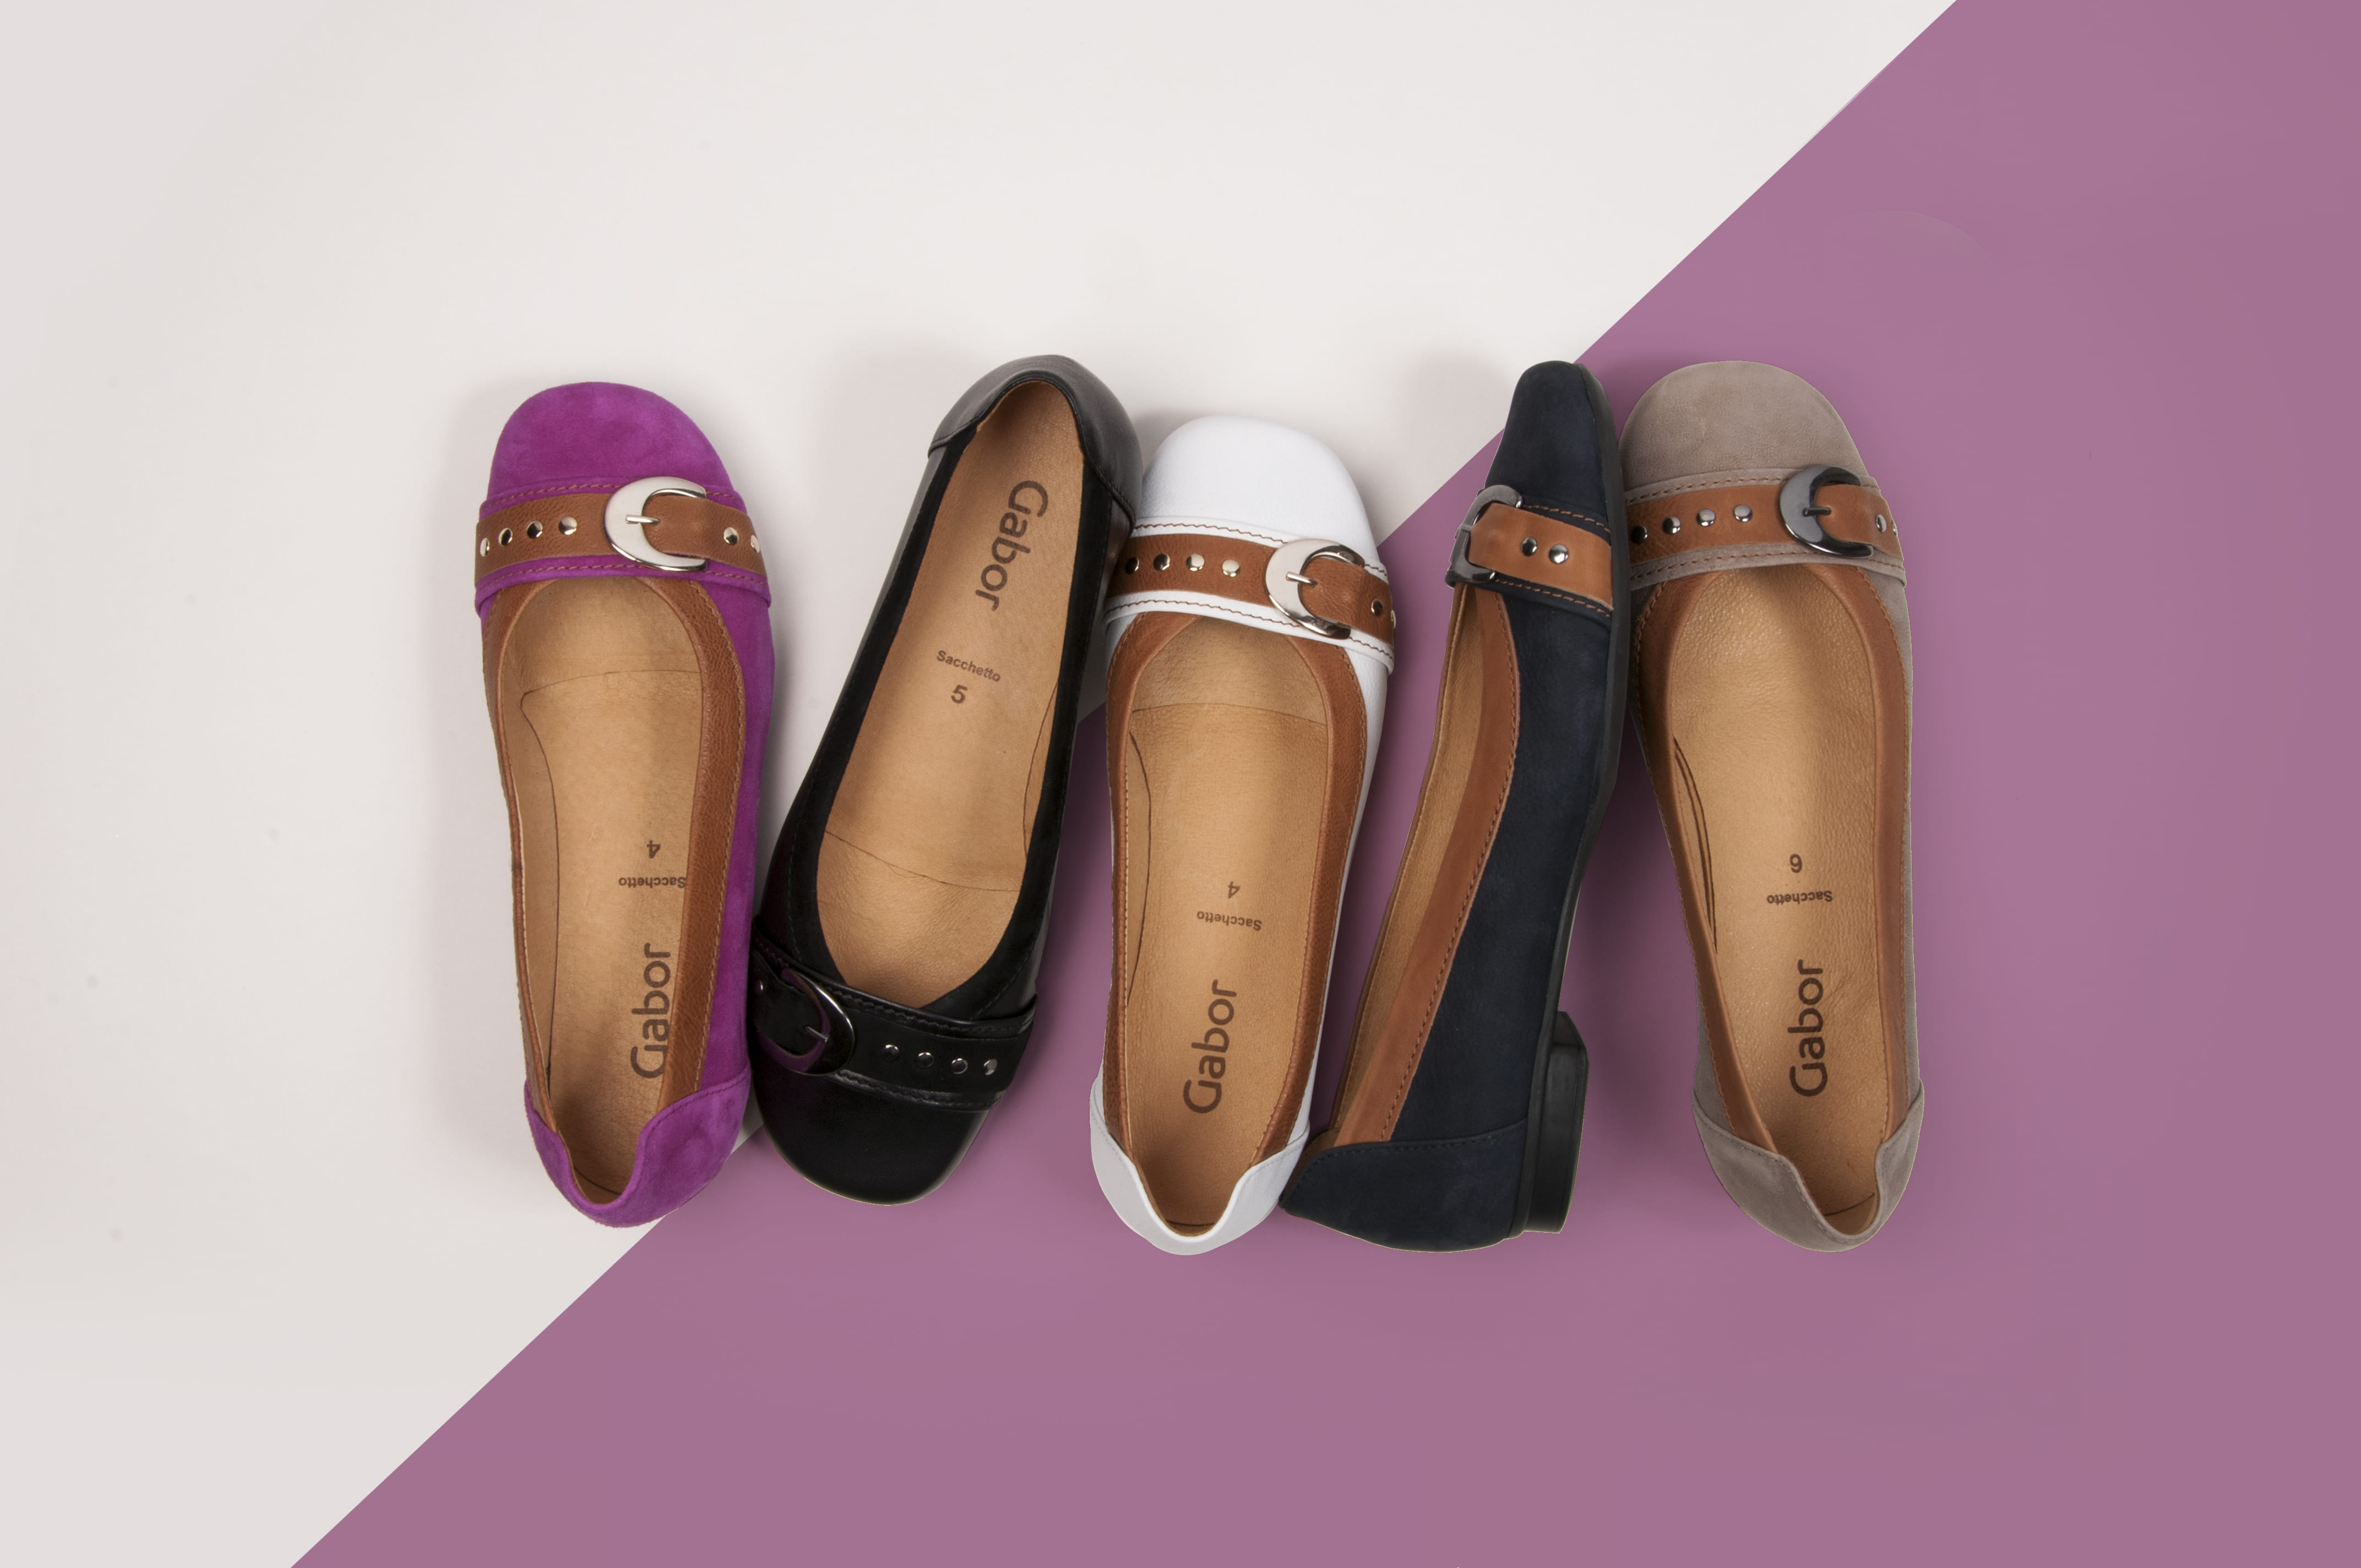 b9b0bca61ef7 Most Wanted  Flat Shoes For Women   Home › Blog